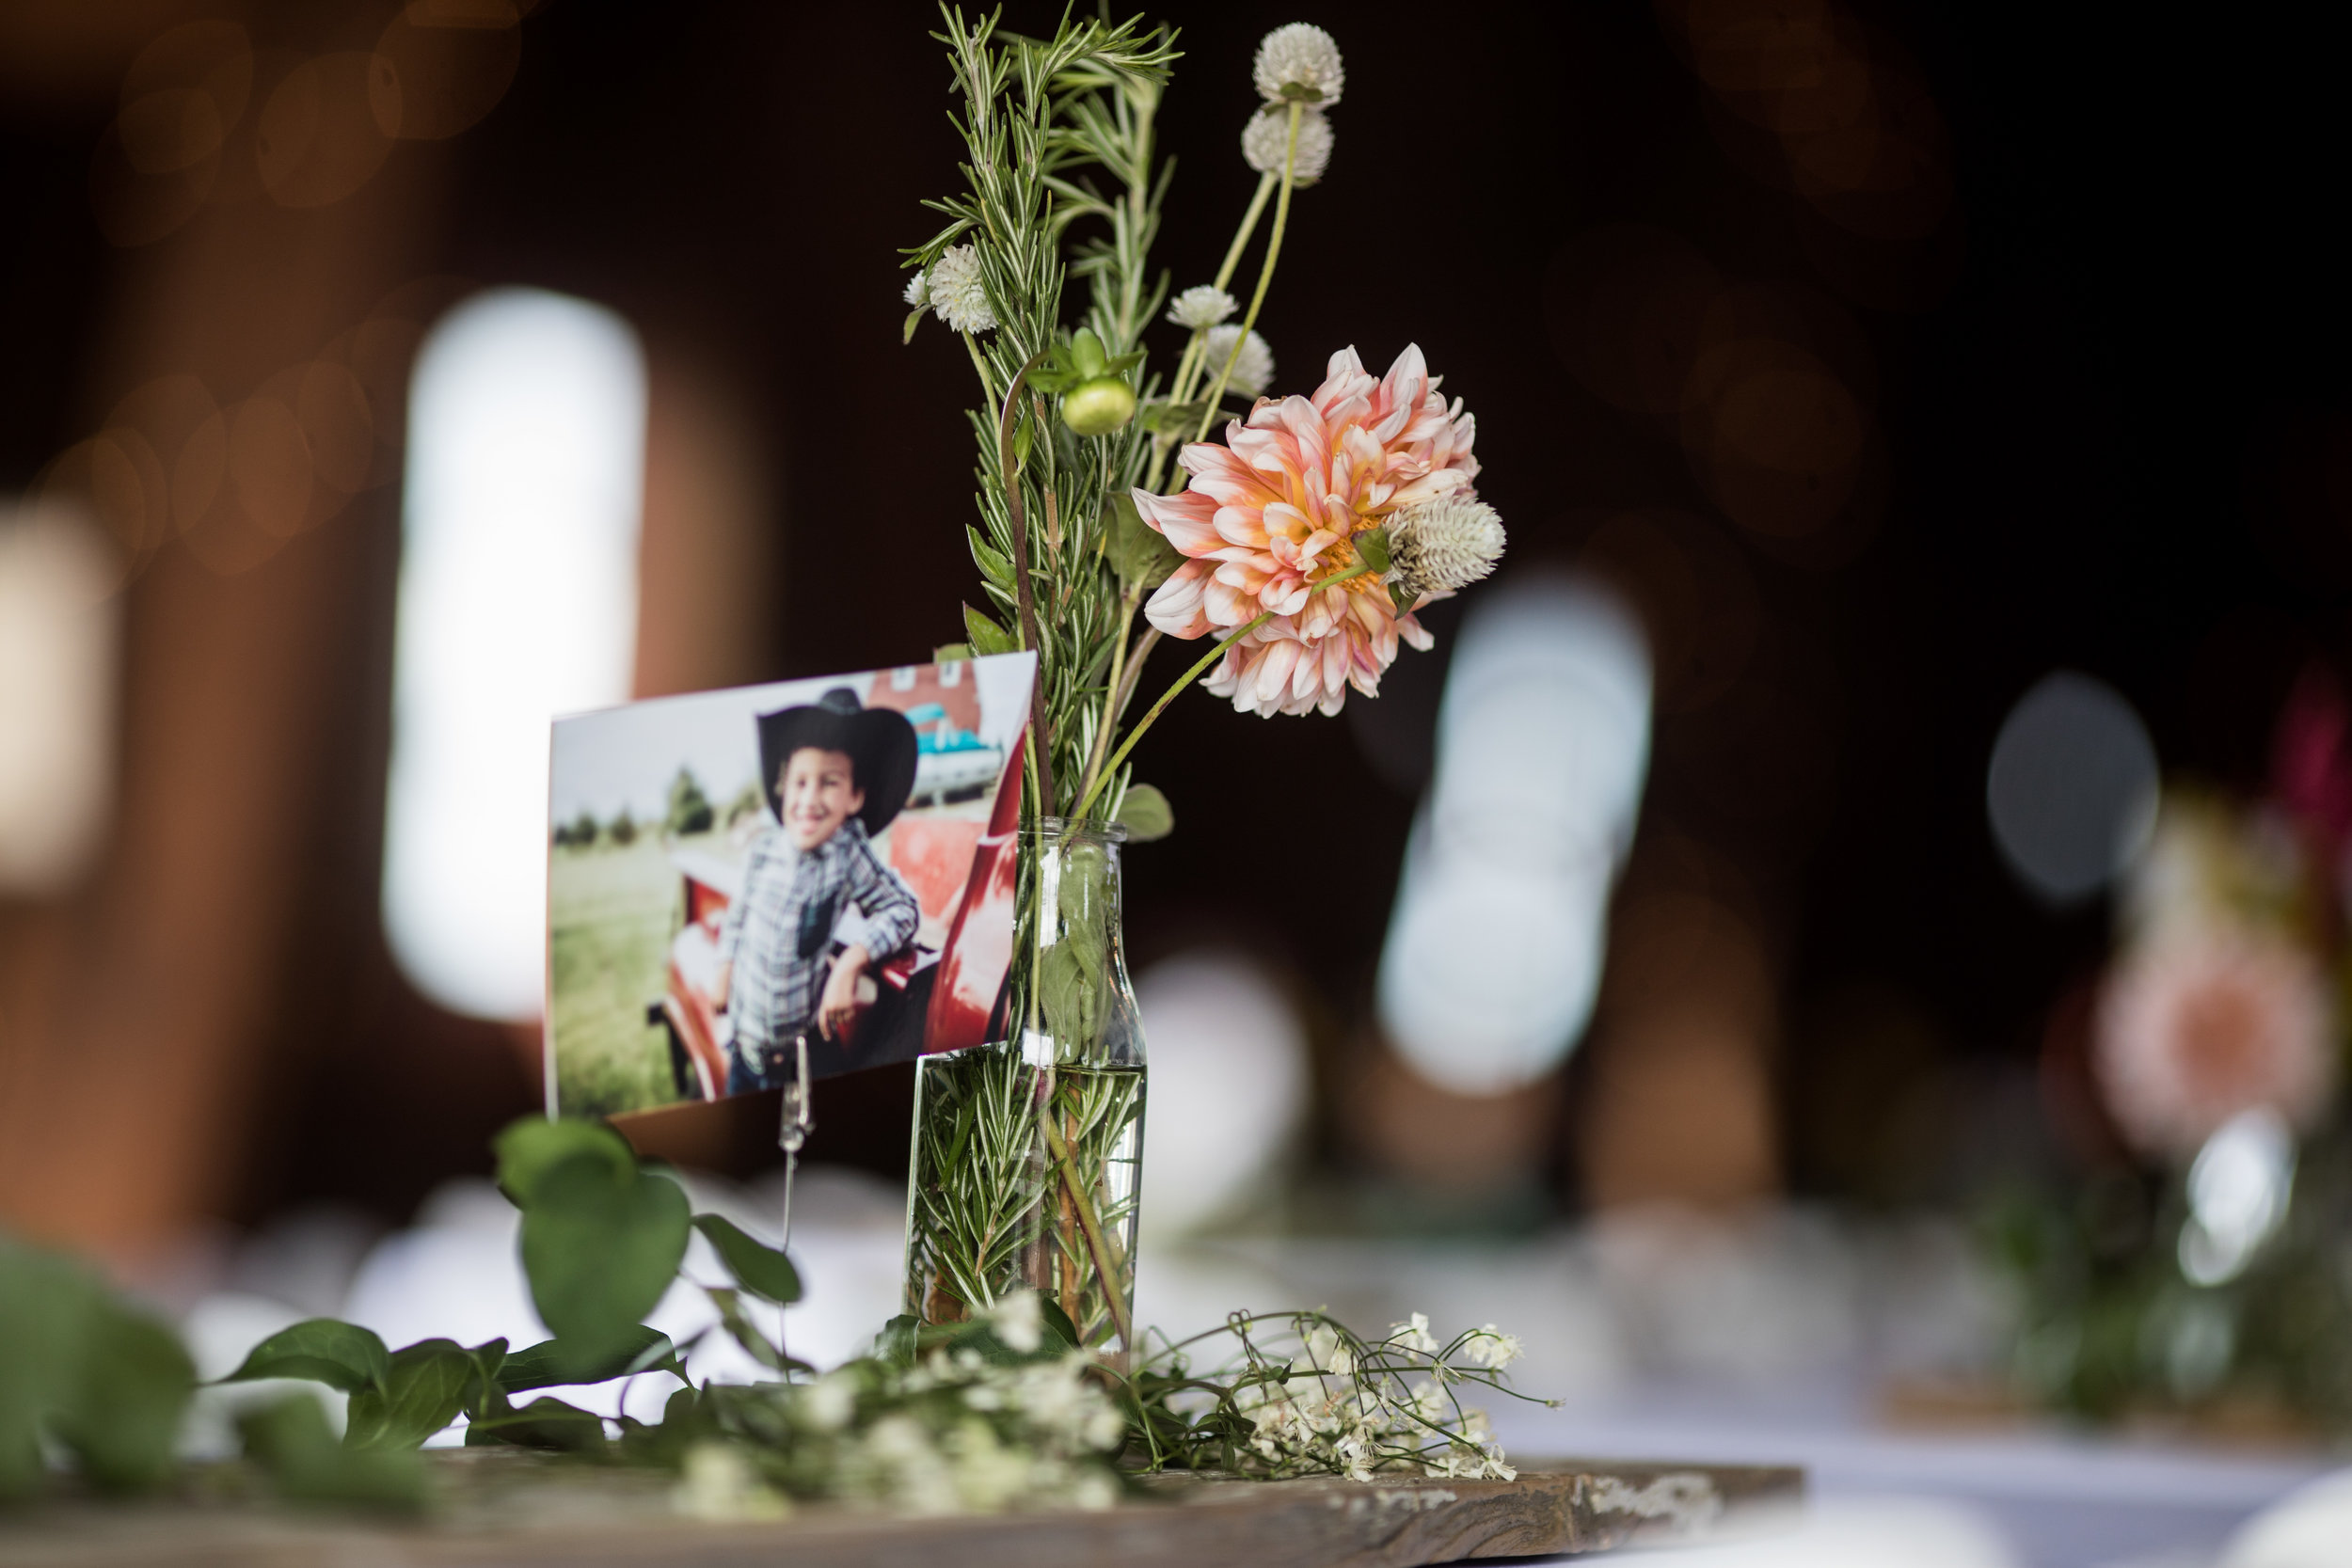 Table Centerpiece at Barn Wedding Venue